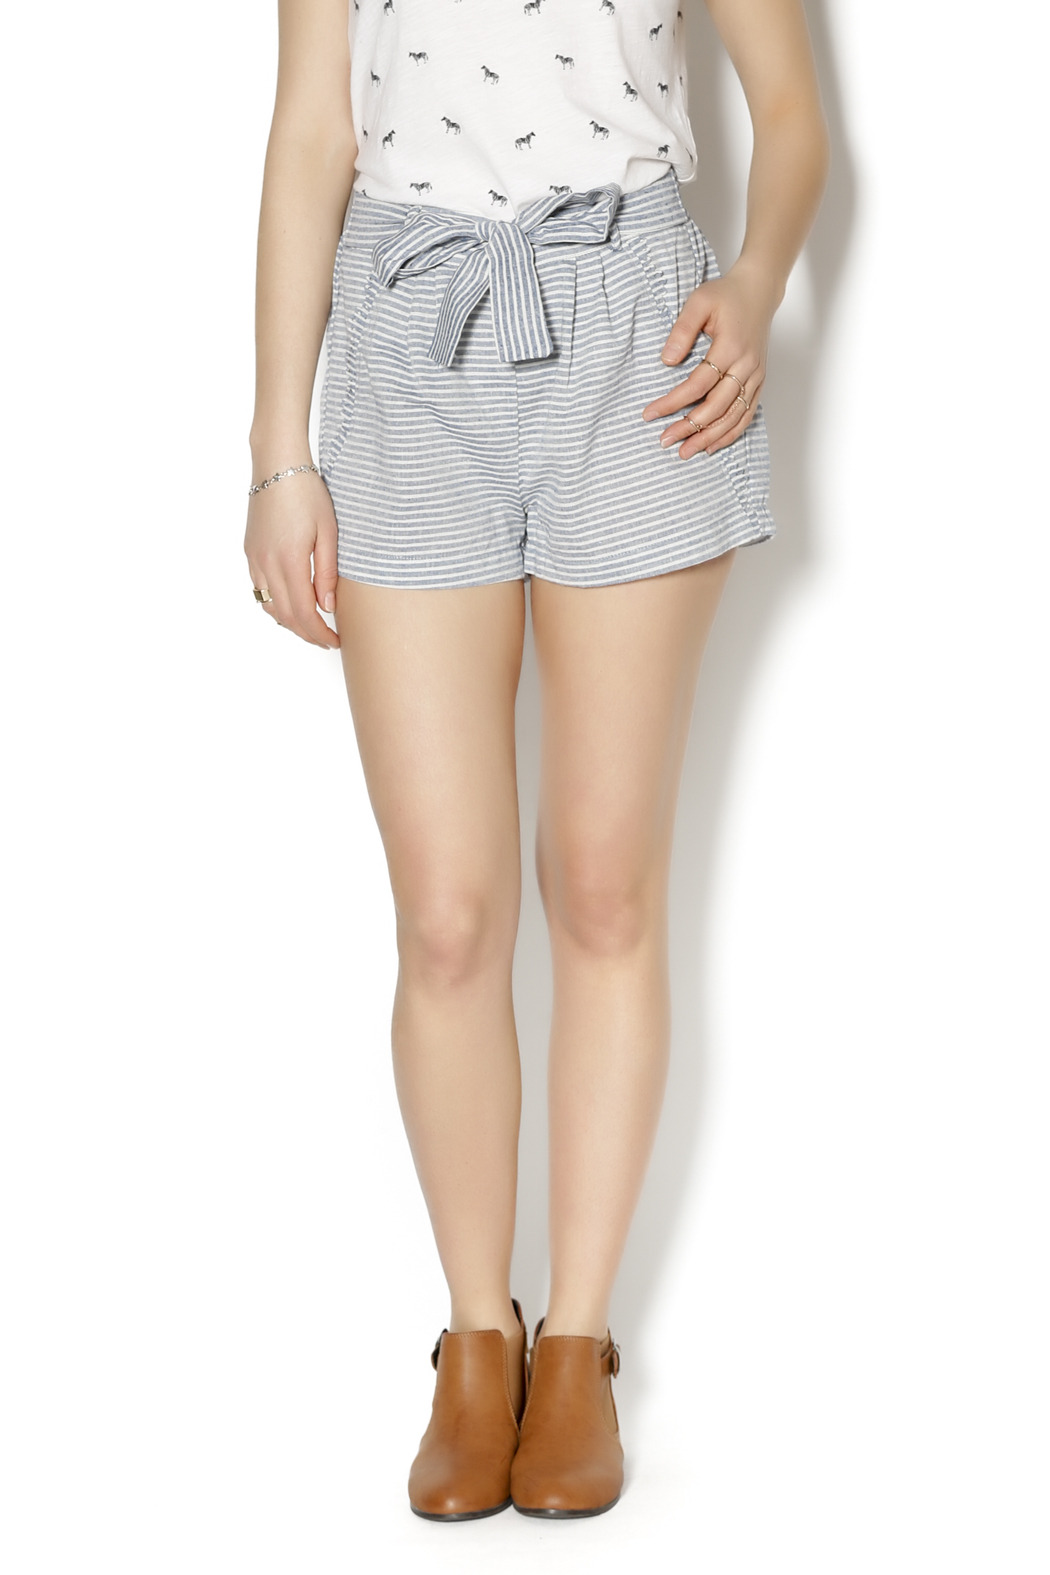 Skies Are Blue Chambray Stripe Shorts from New Jersey by Runaway ...